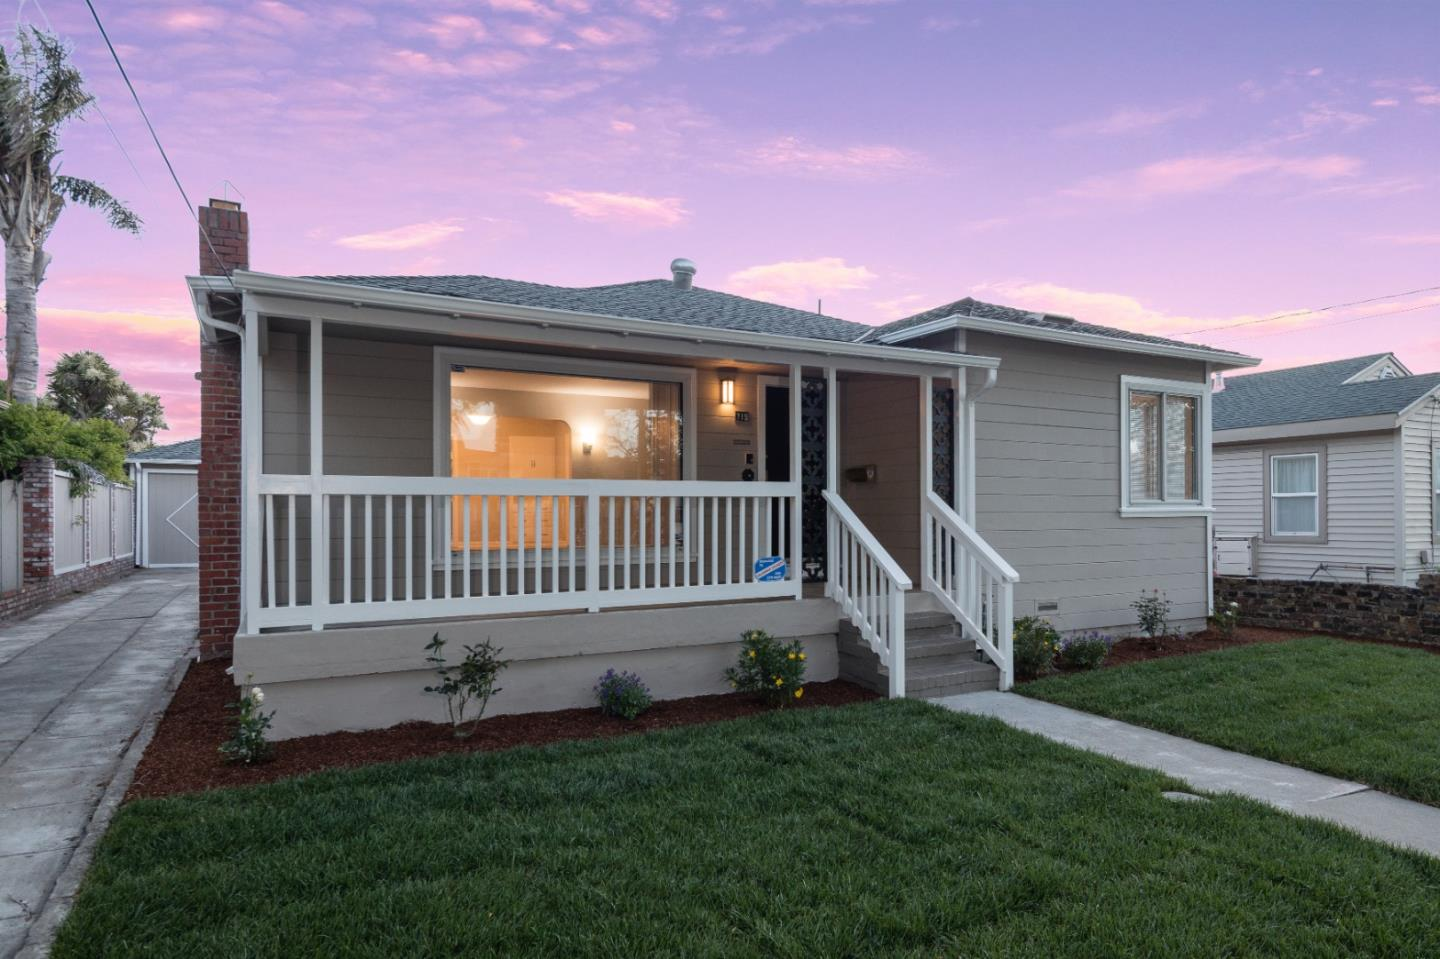 Detail Gallery Image 1 of 19 For 715 3rd Ave, San Bruno, CA 94066 - 3 Beds | 2 Baths